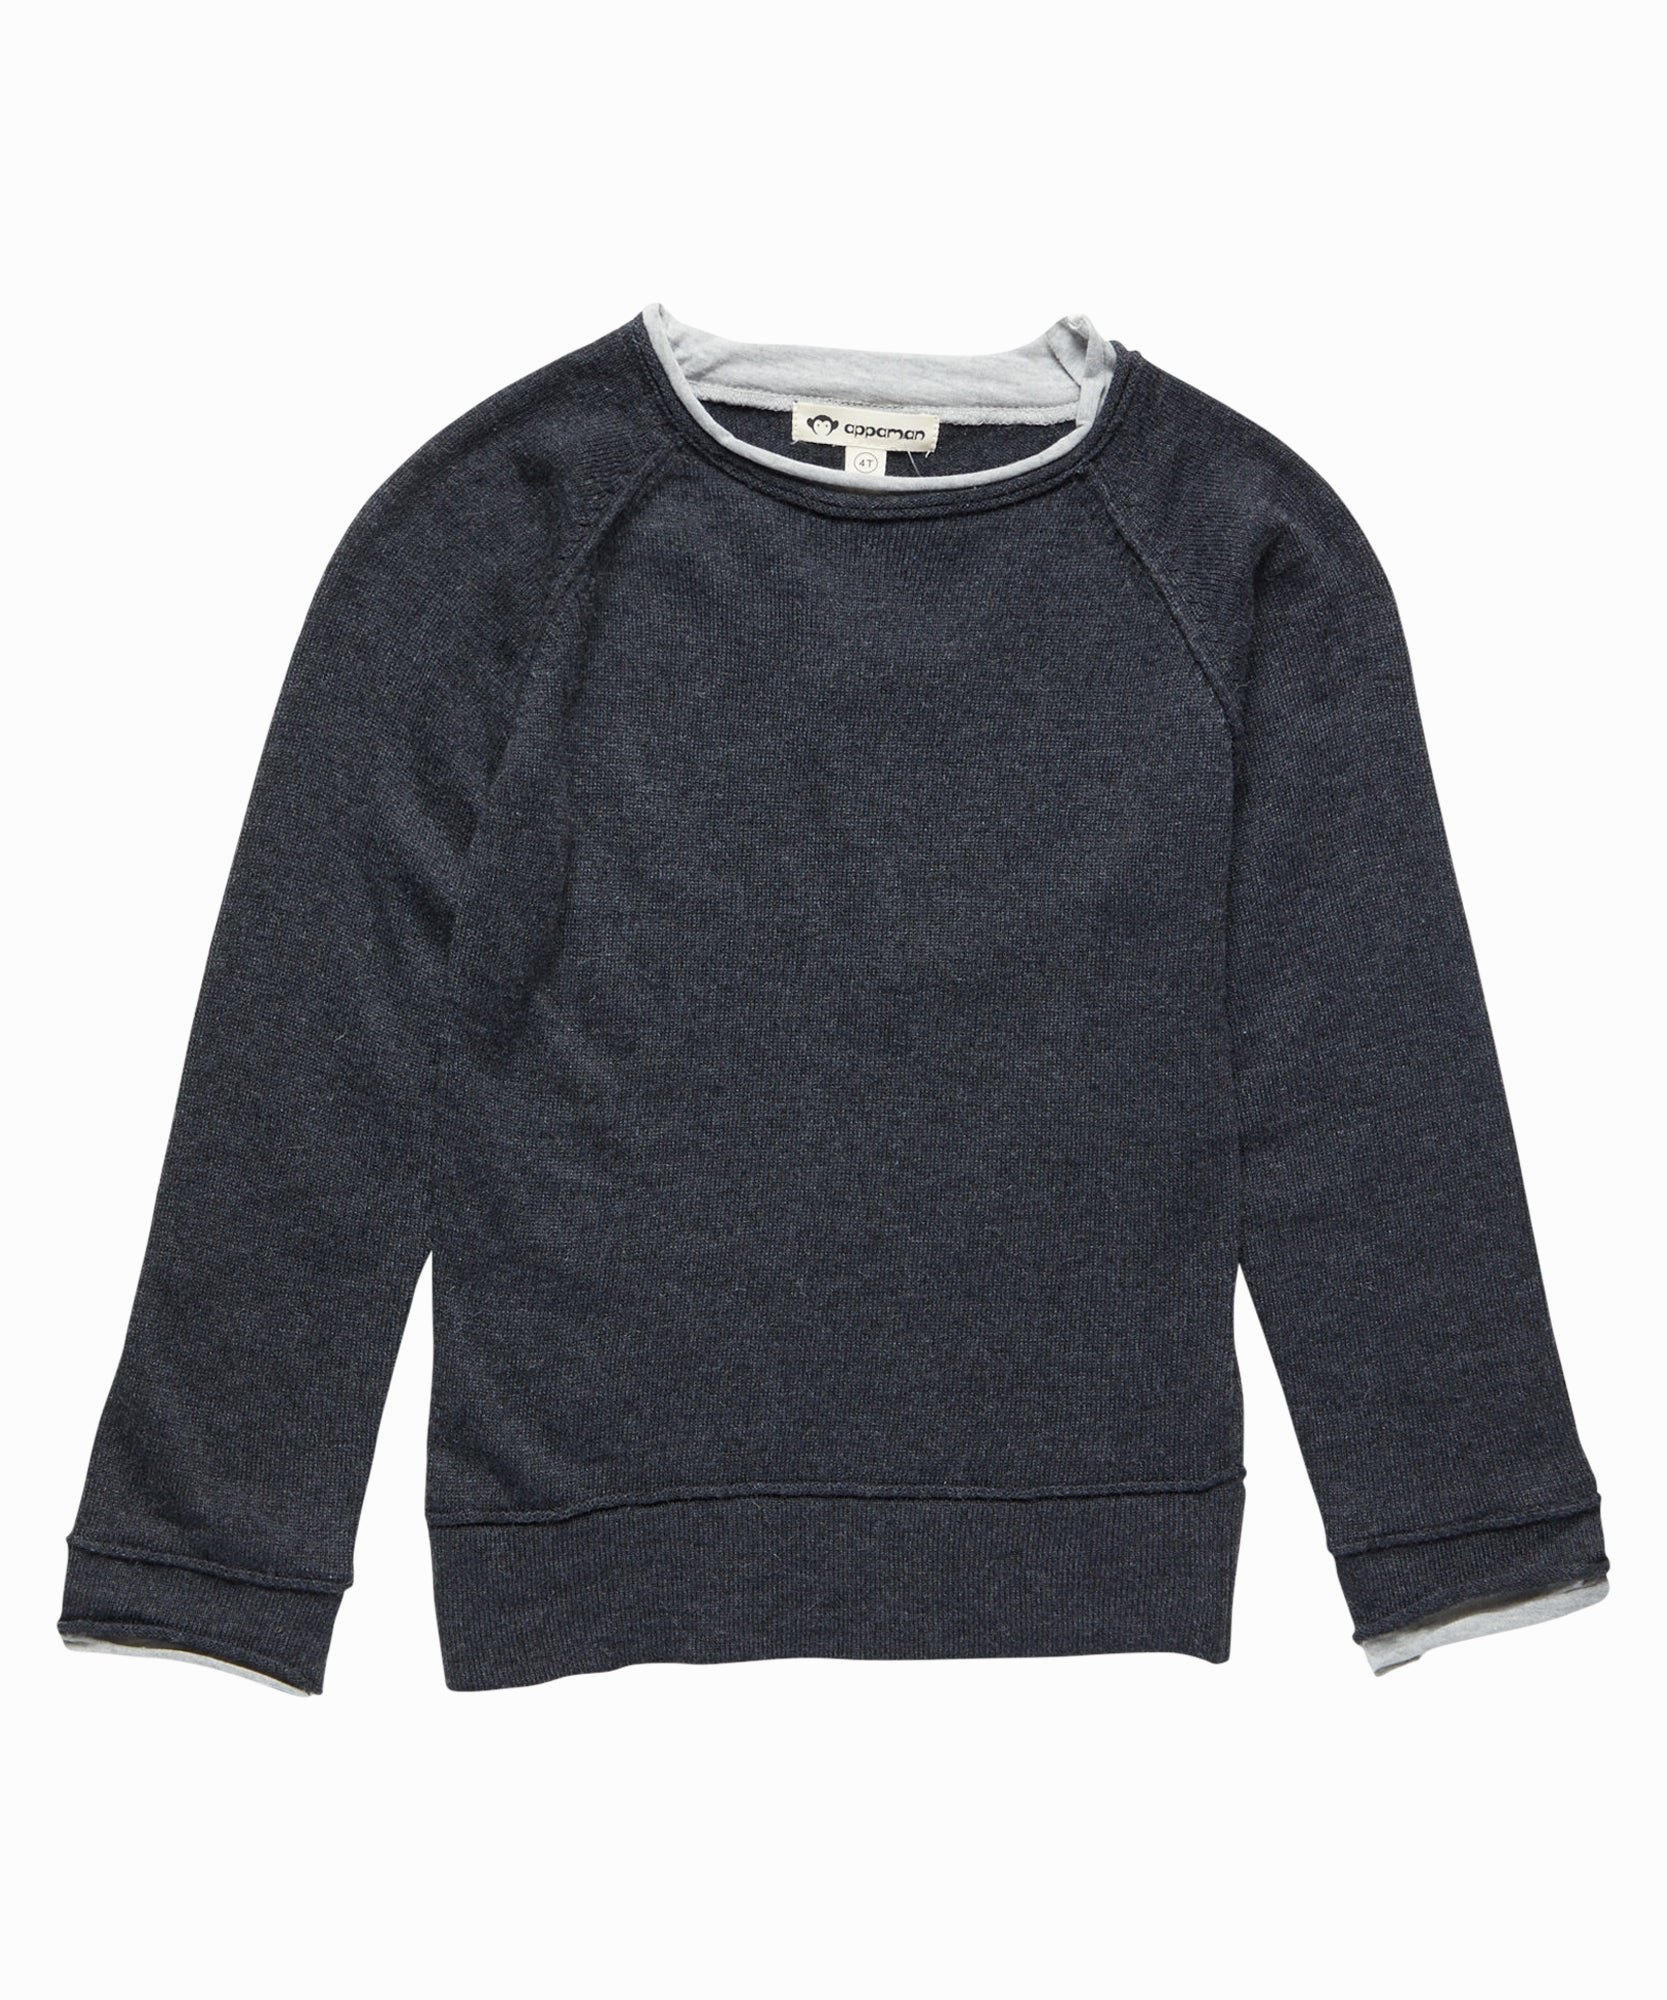 Jackson Roll Neck Sweater